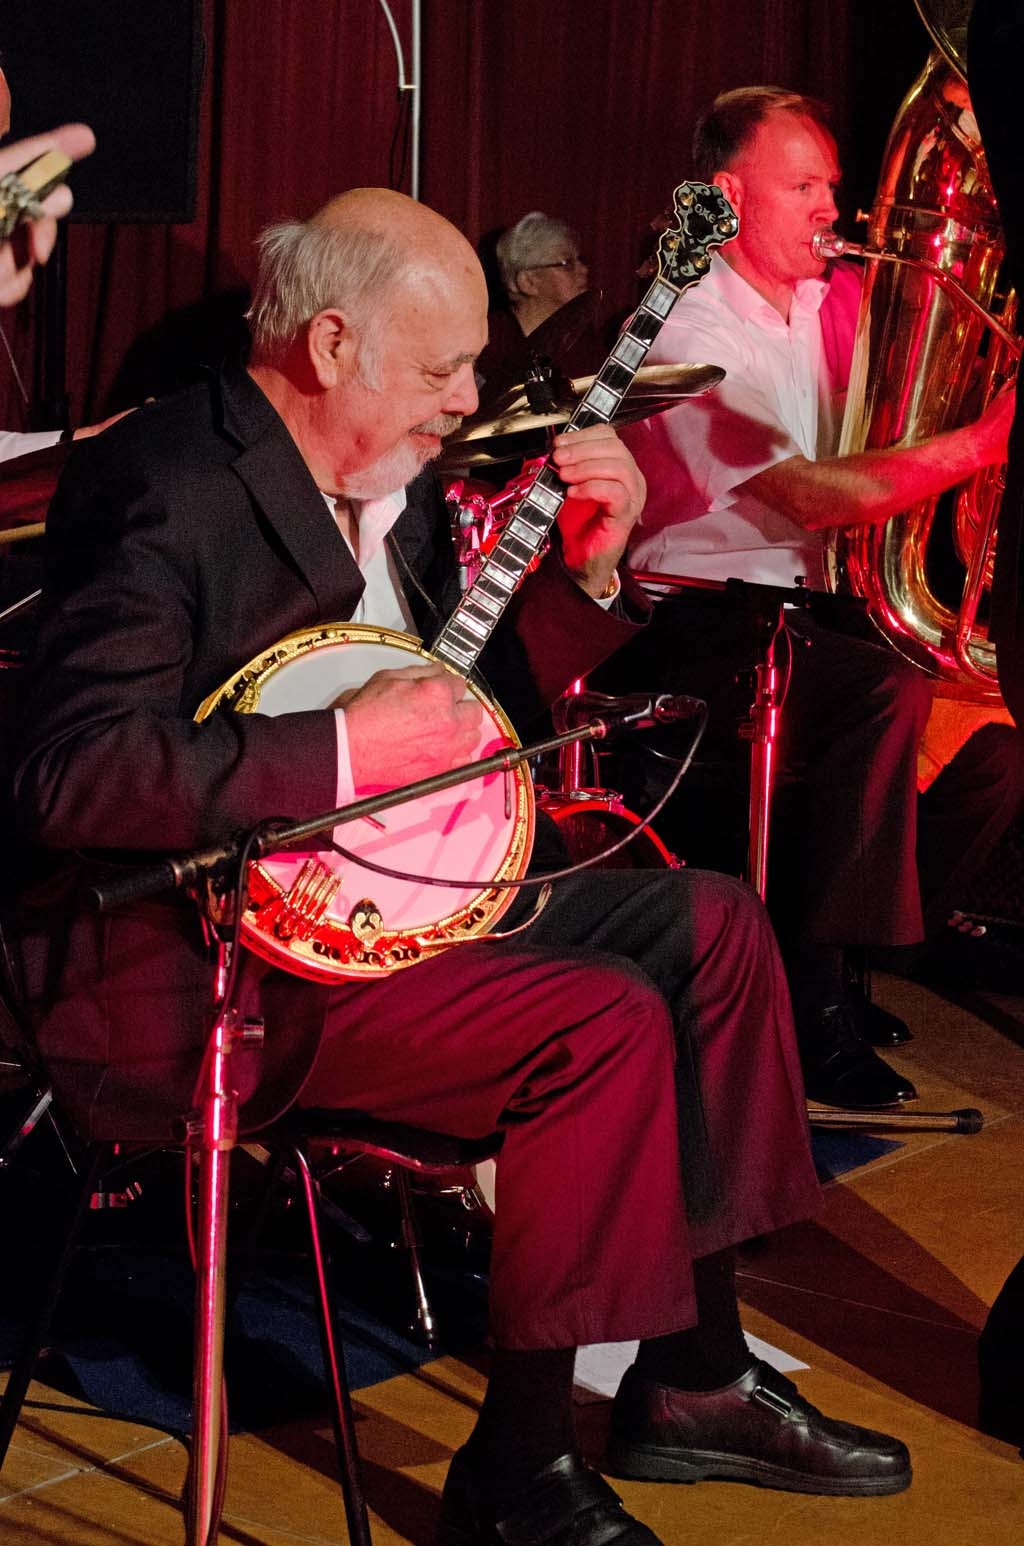 18_Jazz Lips Peter Banjo Meyer_022015.jpg